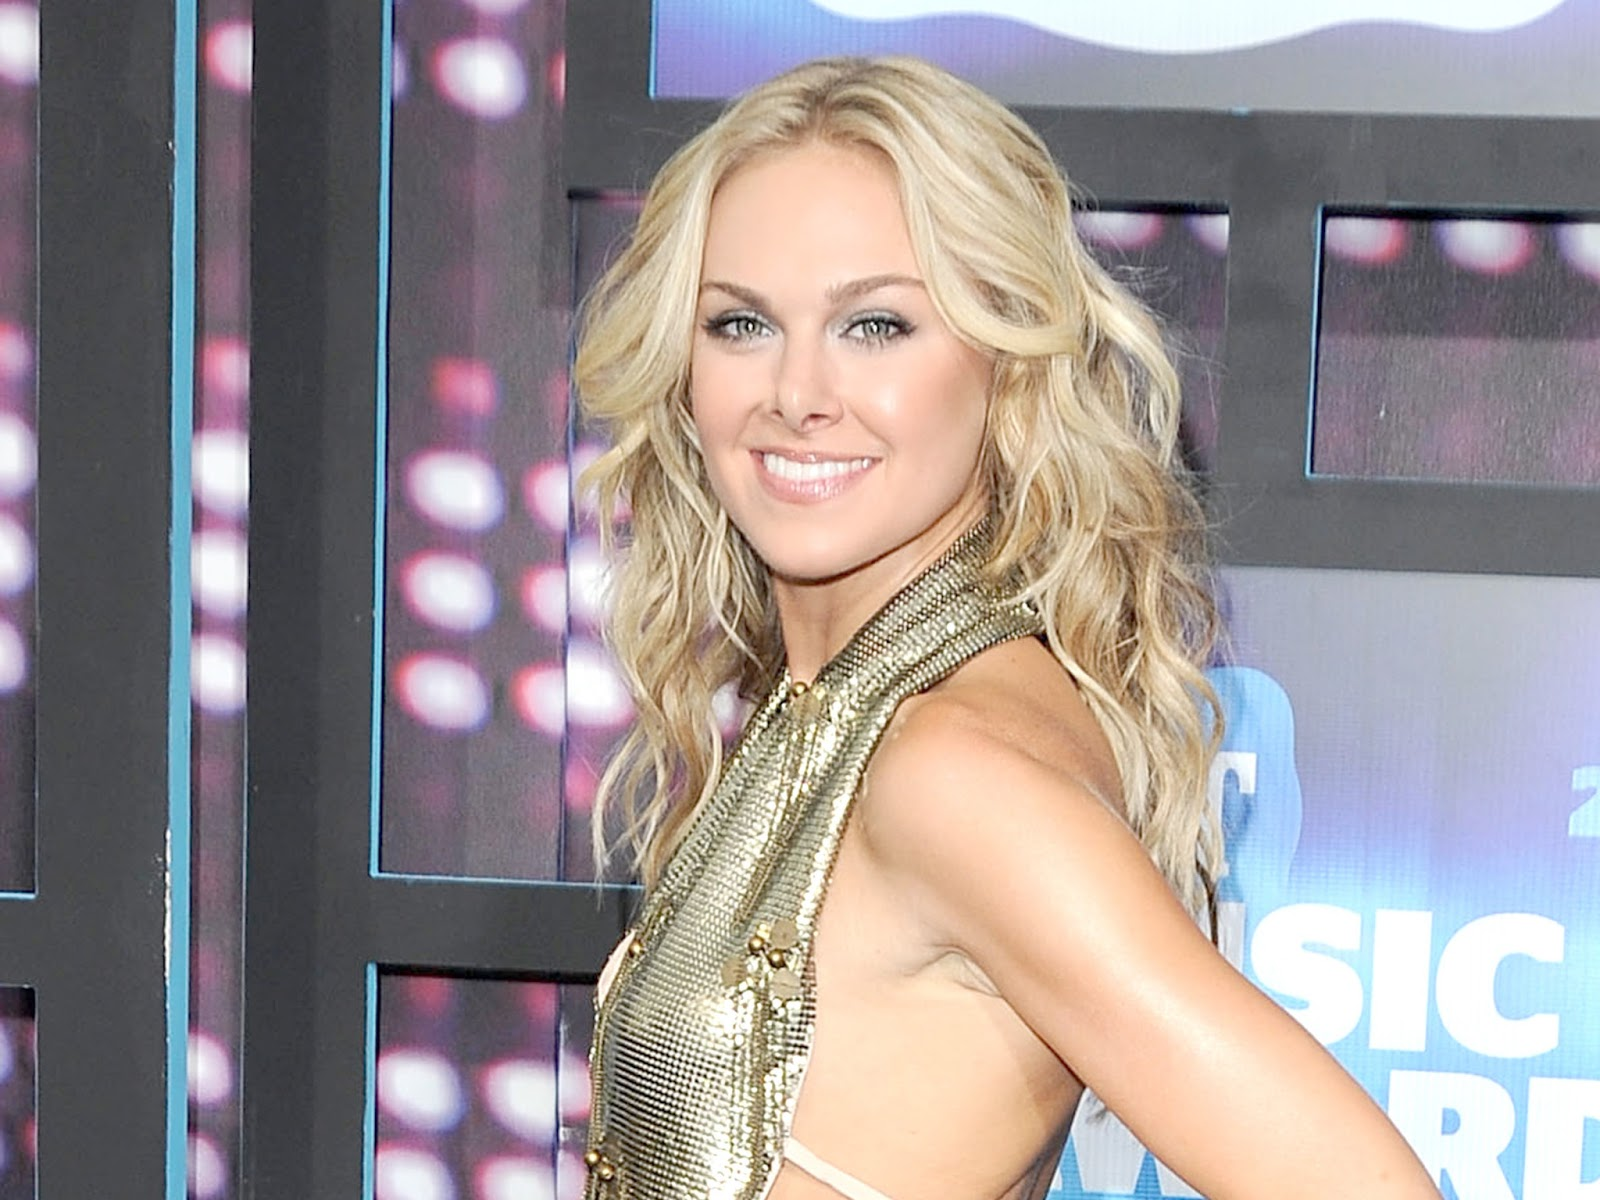 Laura Bell Bundy HQ wallpapers